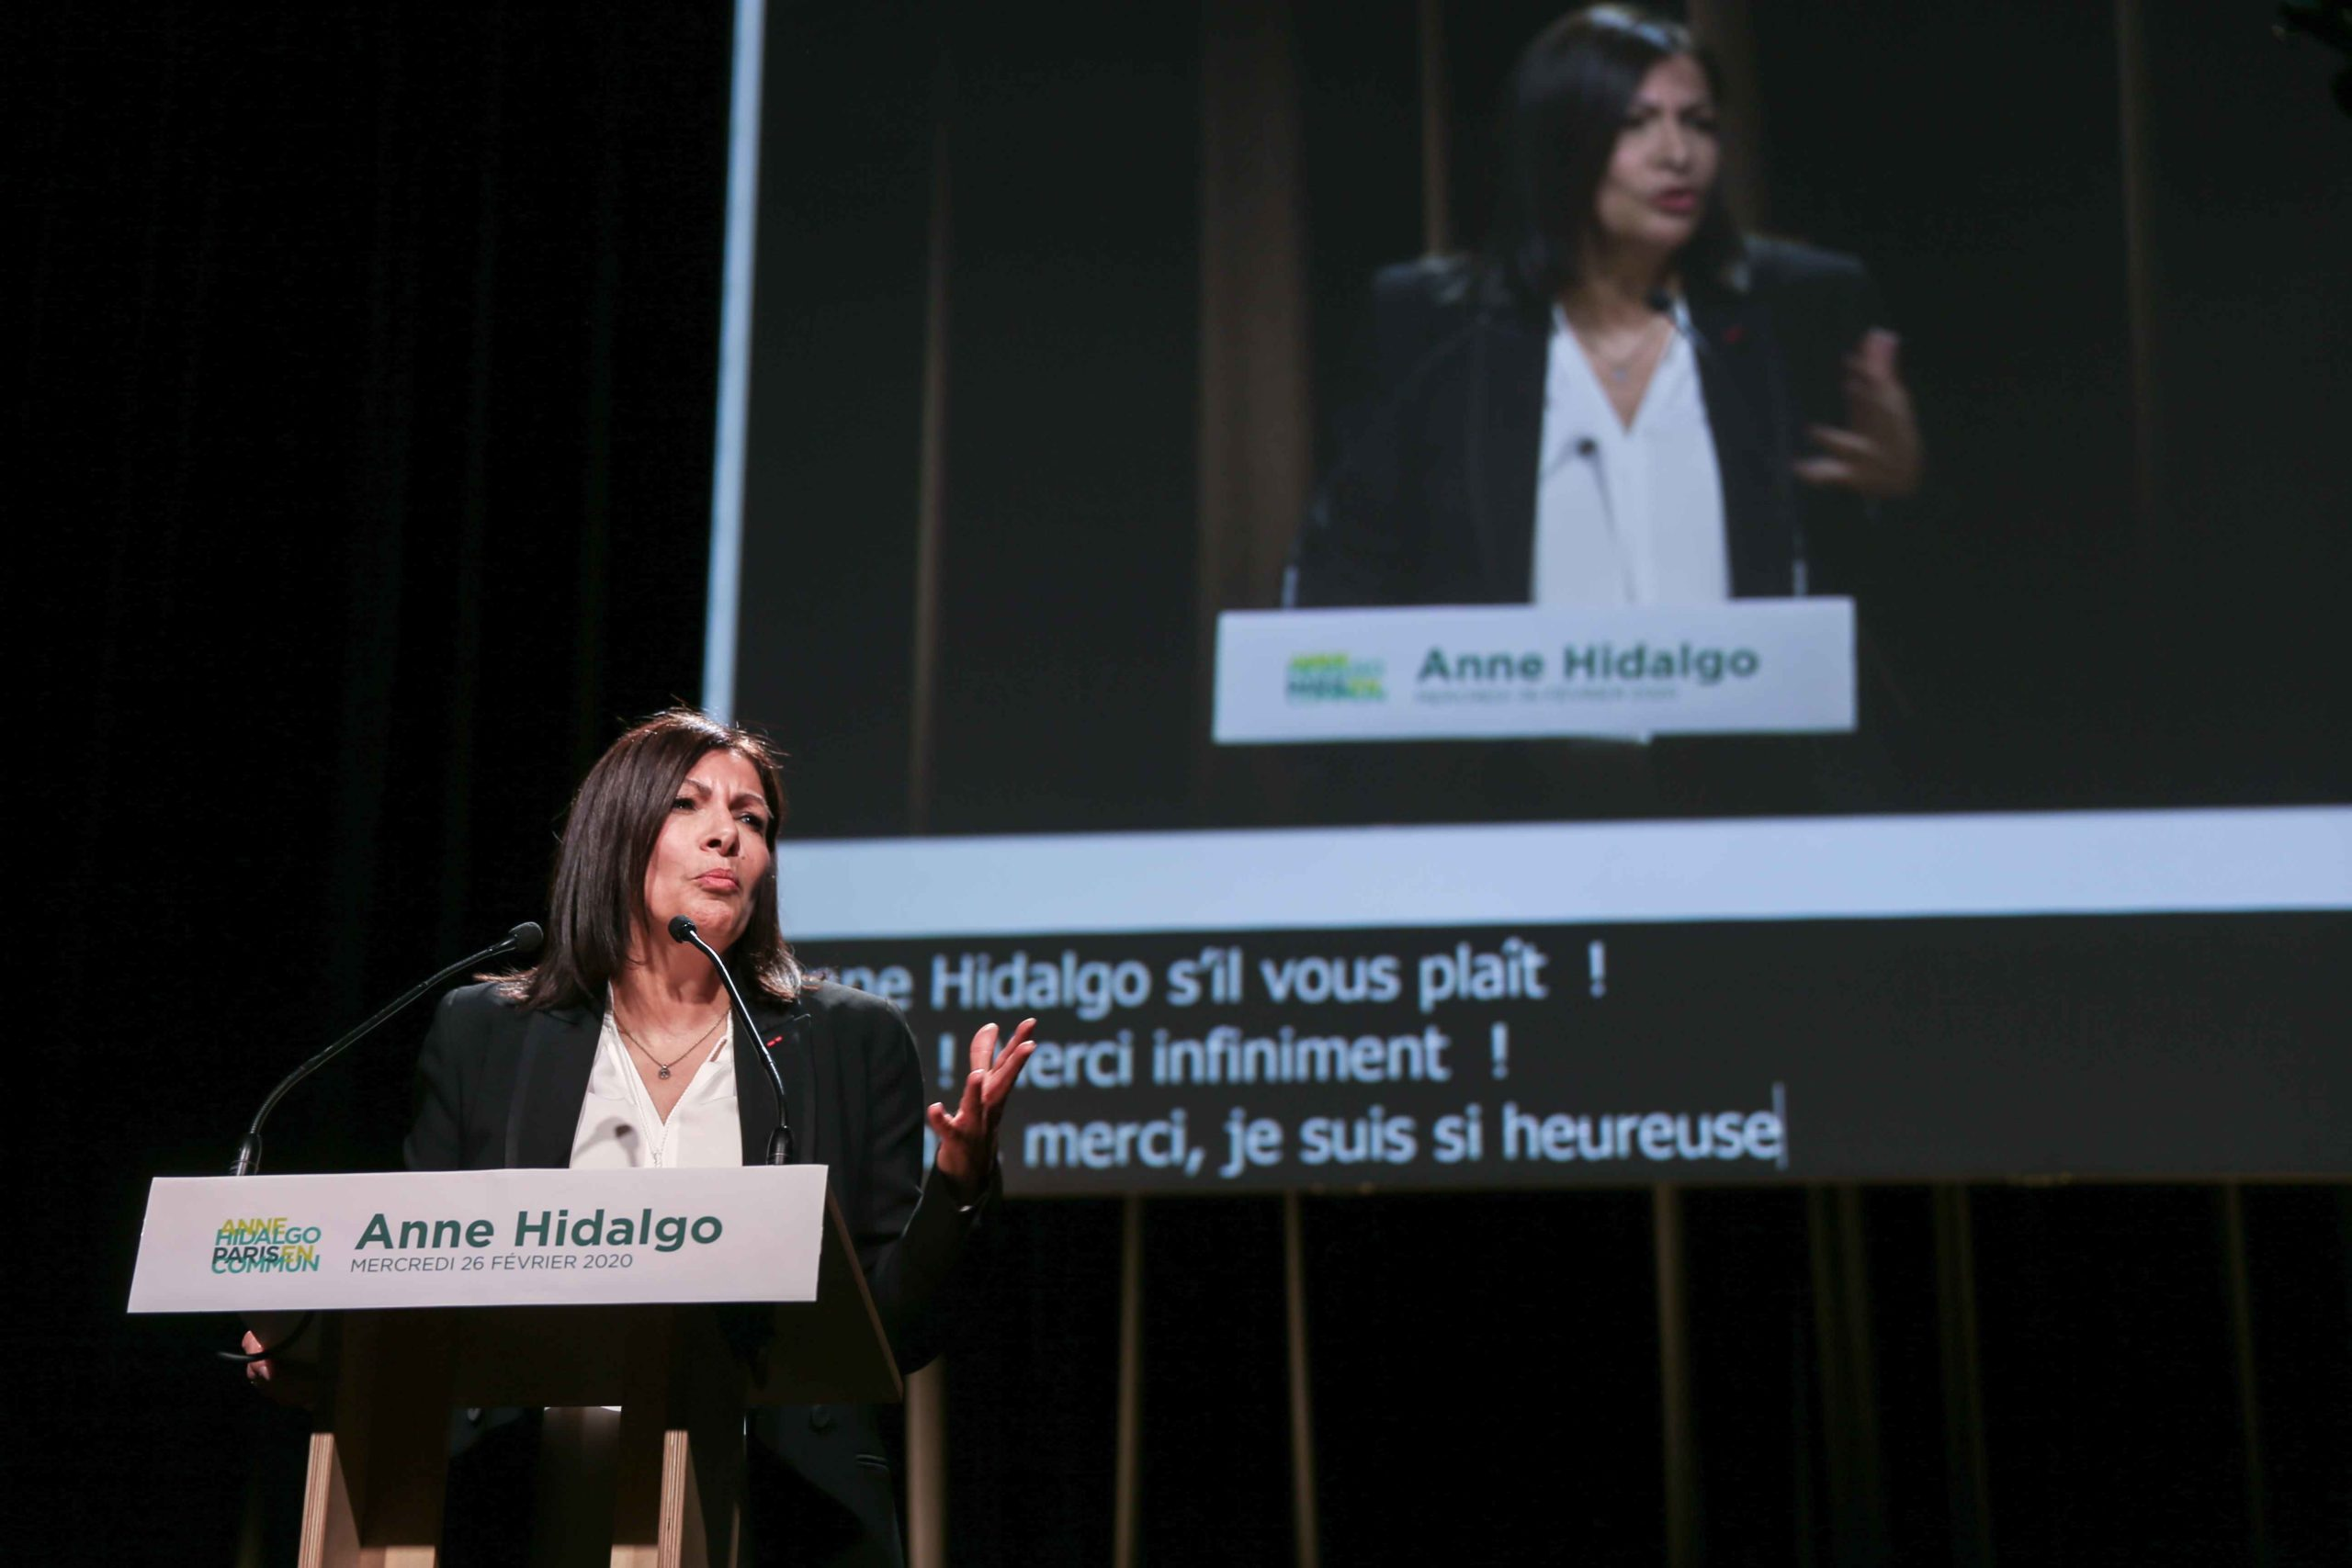 Paris Mayor and candidate for re-election Anne Hidalgo gestures as she delivers a speech during a campaign meeting at the Elysee Montmartre venue in Paris, on February 26, 2020, ahead of March 2020 mayoral elections in France.